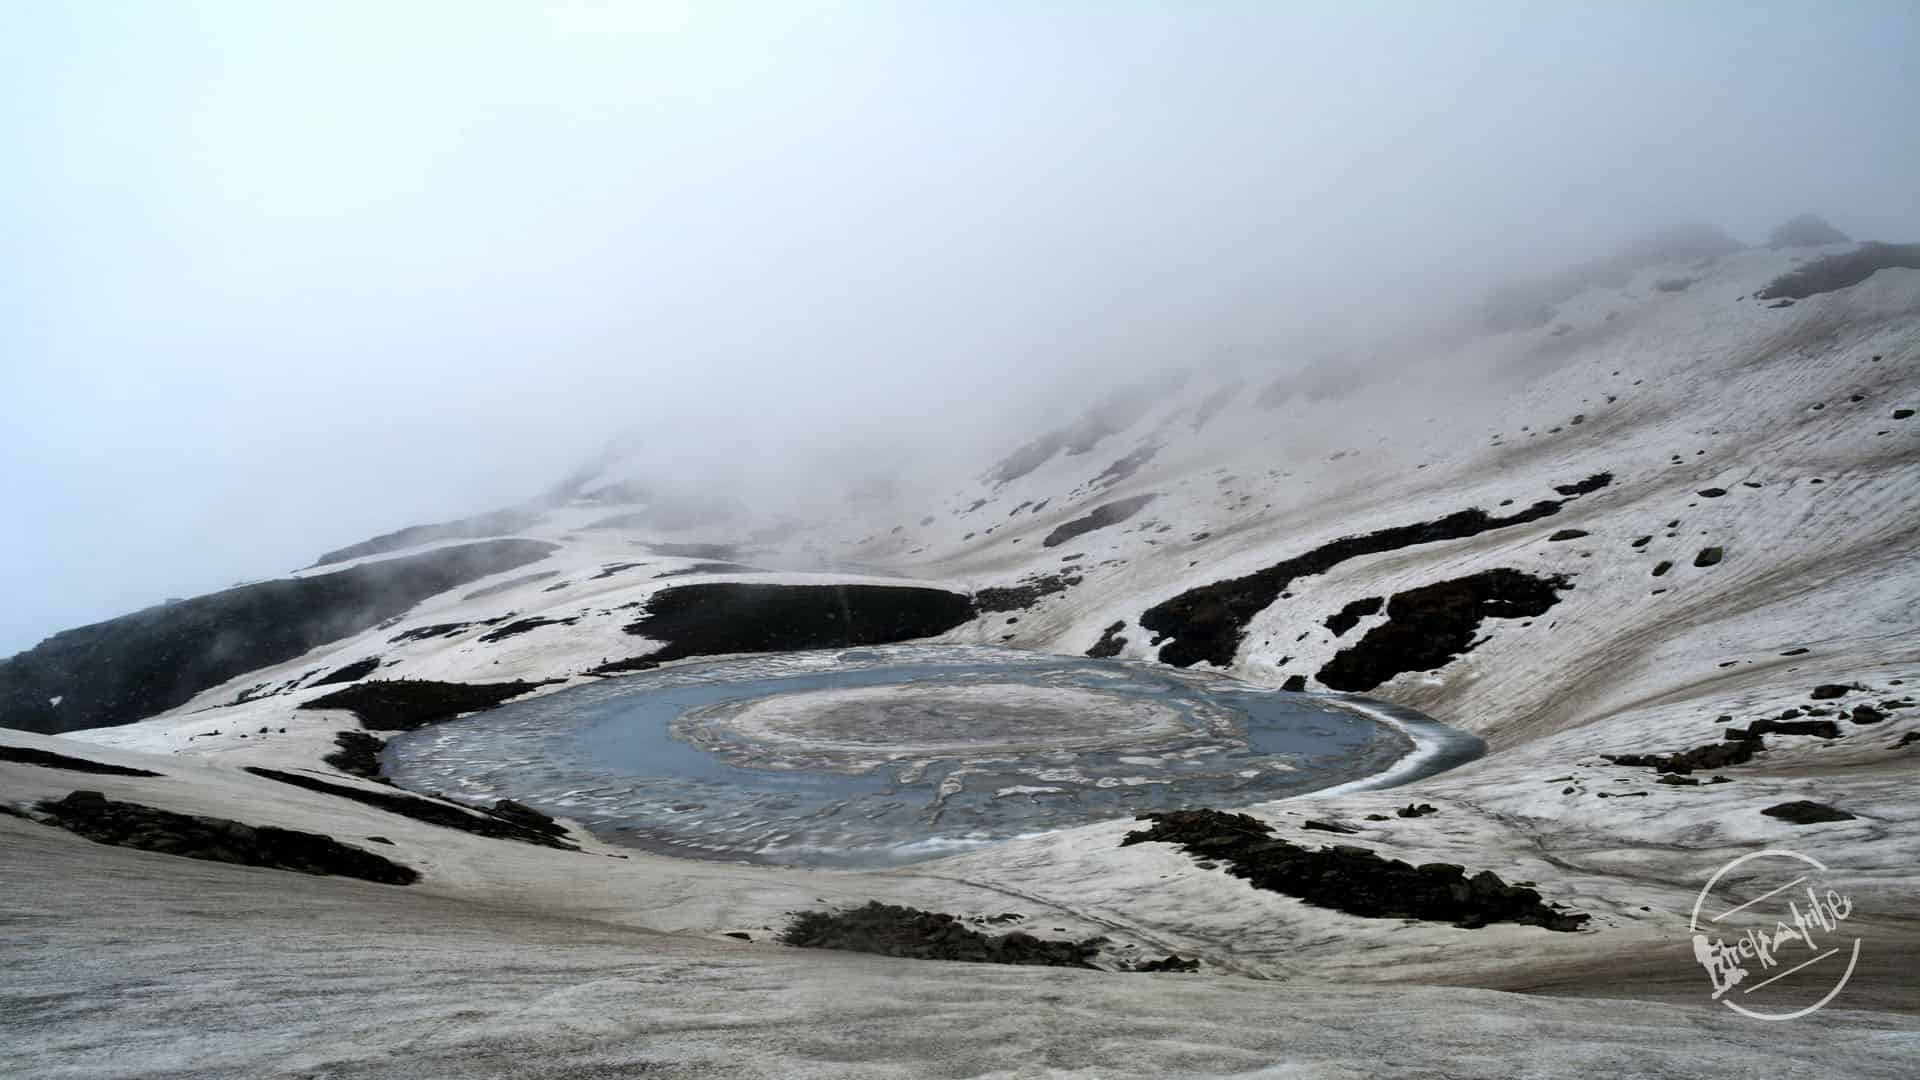 Bhrigu Lake Trekking - Bhrigu lake - also called frozen disk lake